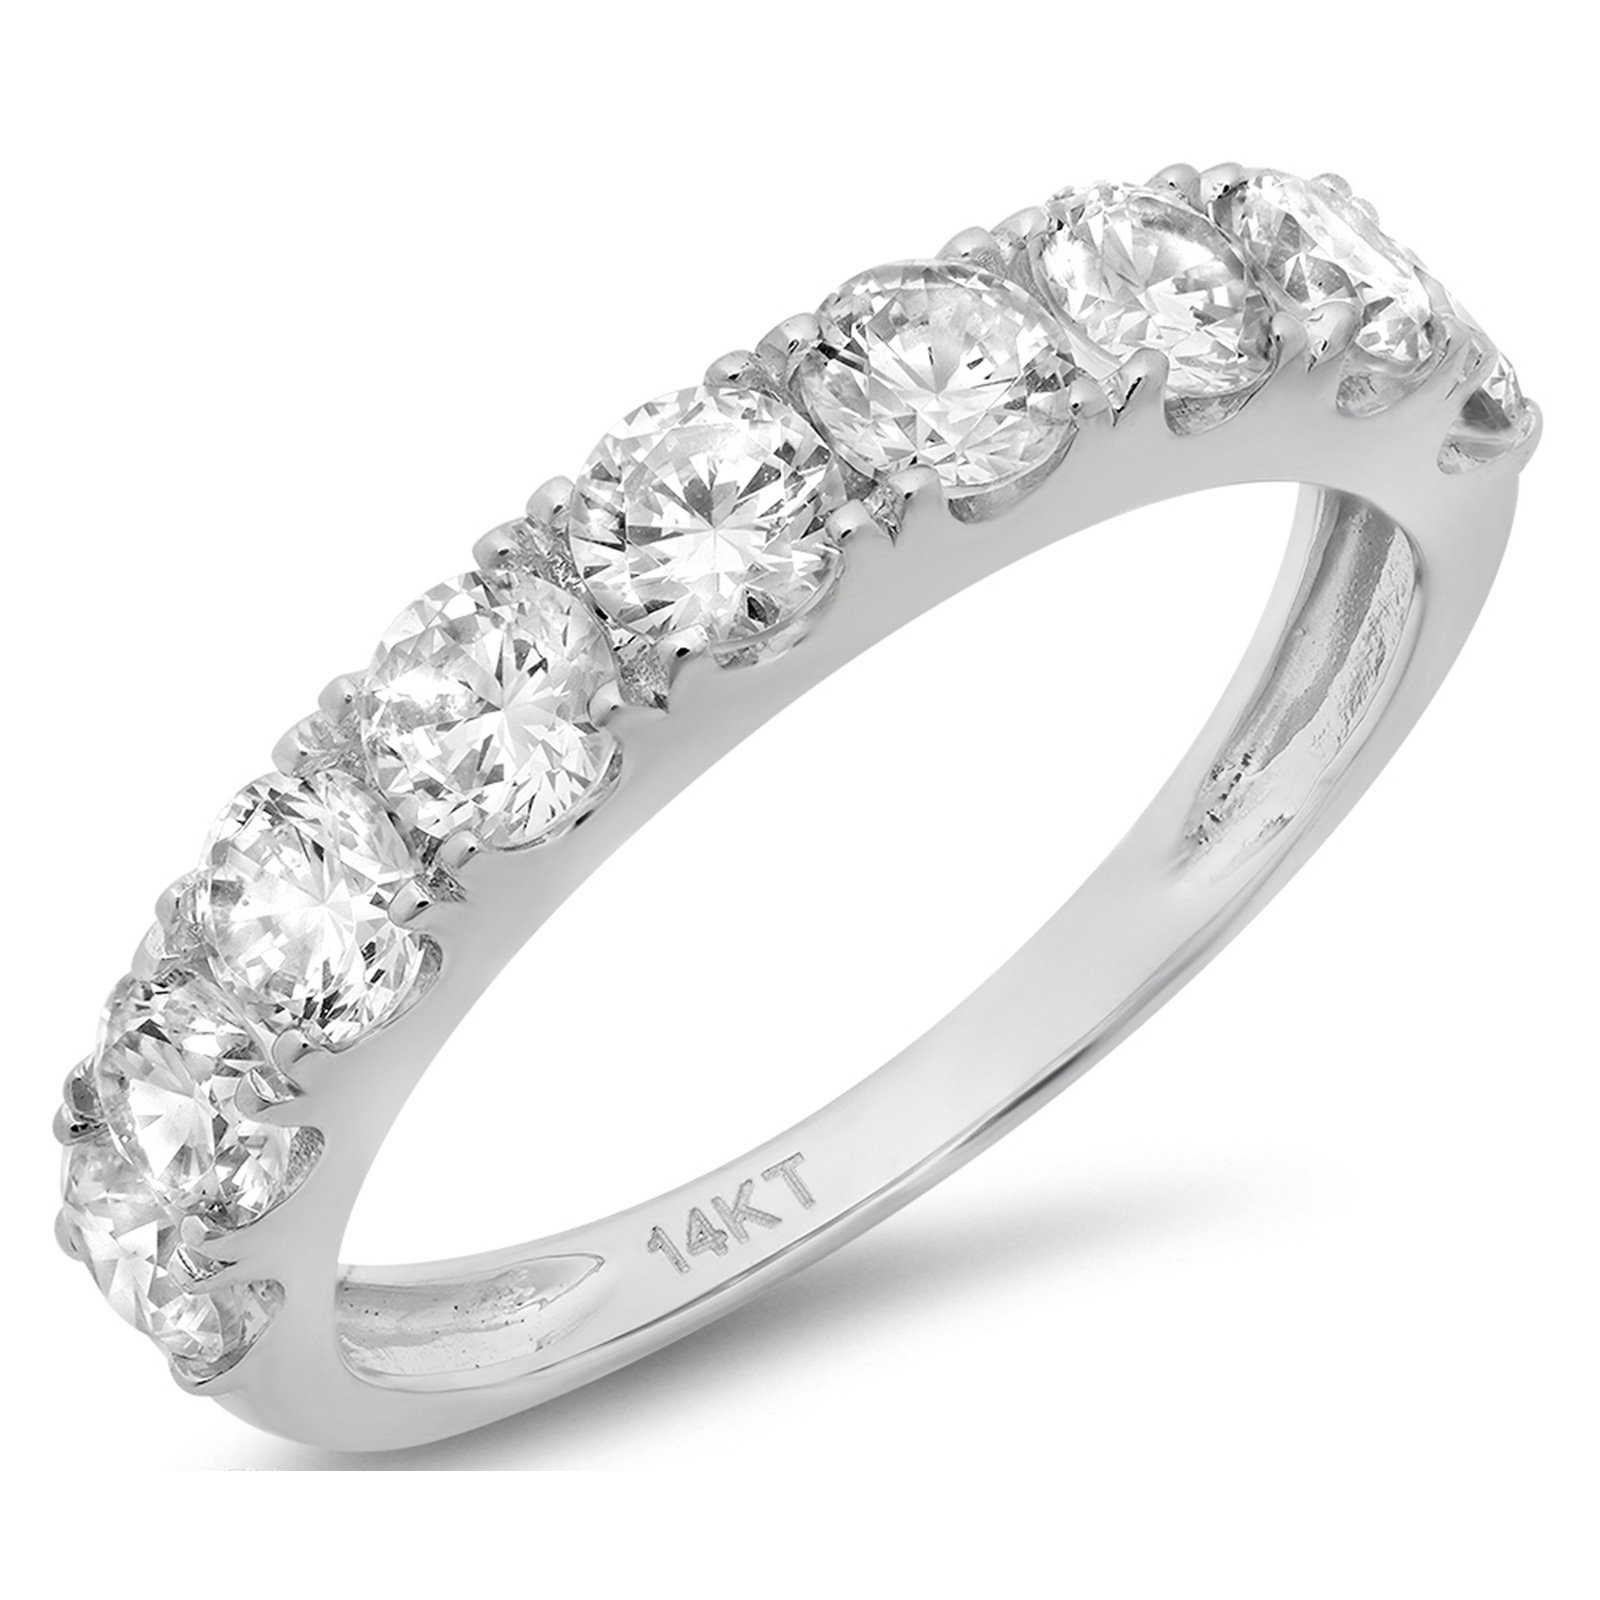 Clara Pucci 1.2 Ct Round Cut Pave Set Wedding Engagement Bridal Anniversary Band Ring 14Kt White Gold, Size 7.25 by Clara Pucci